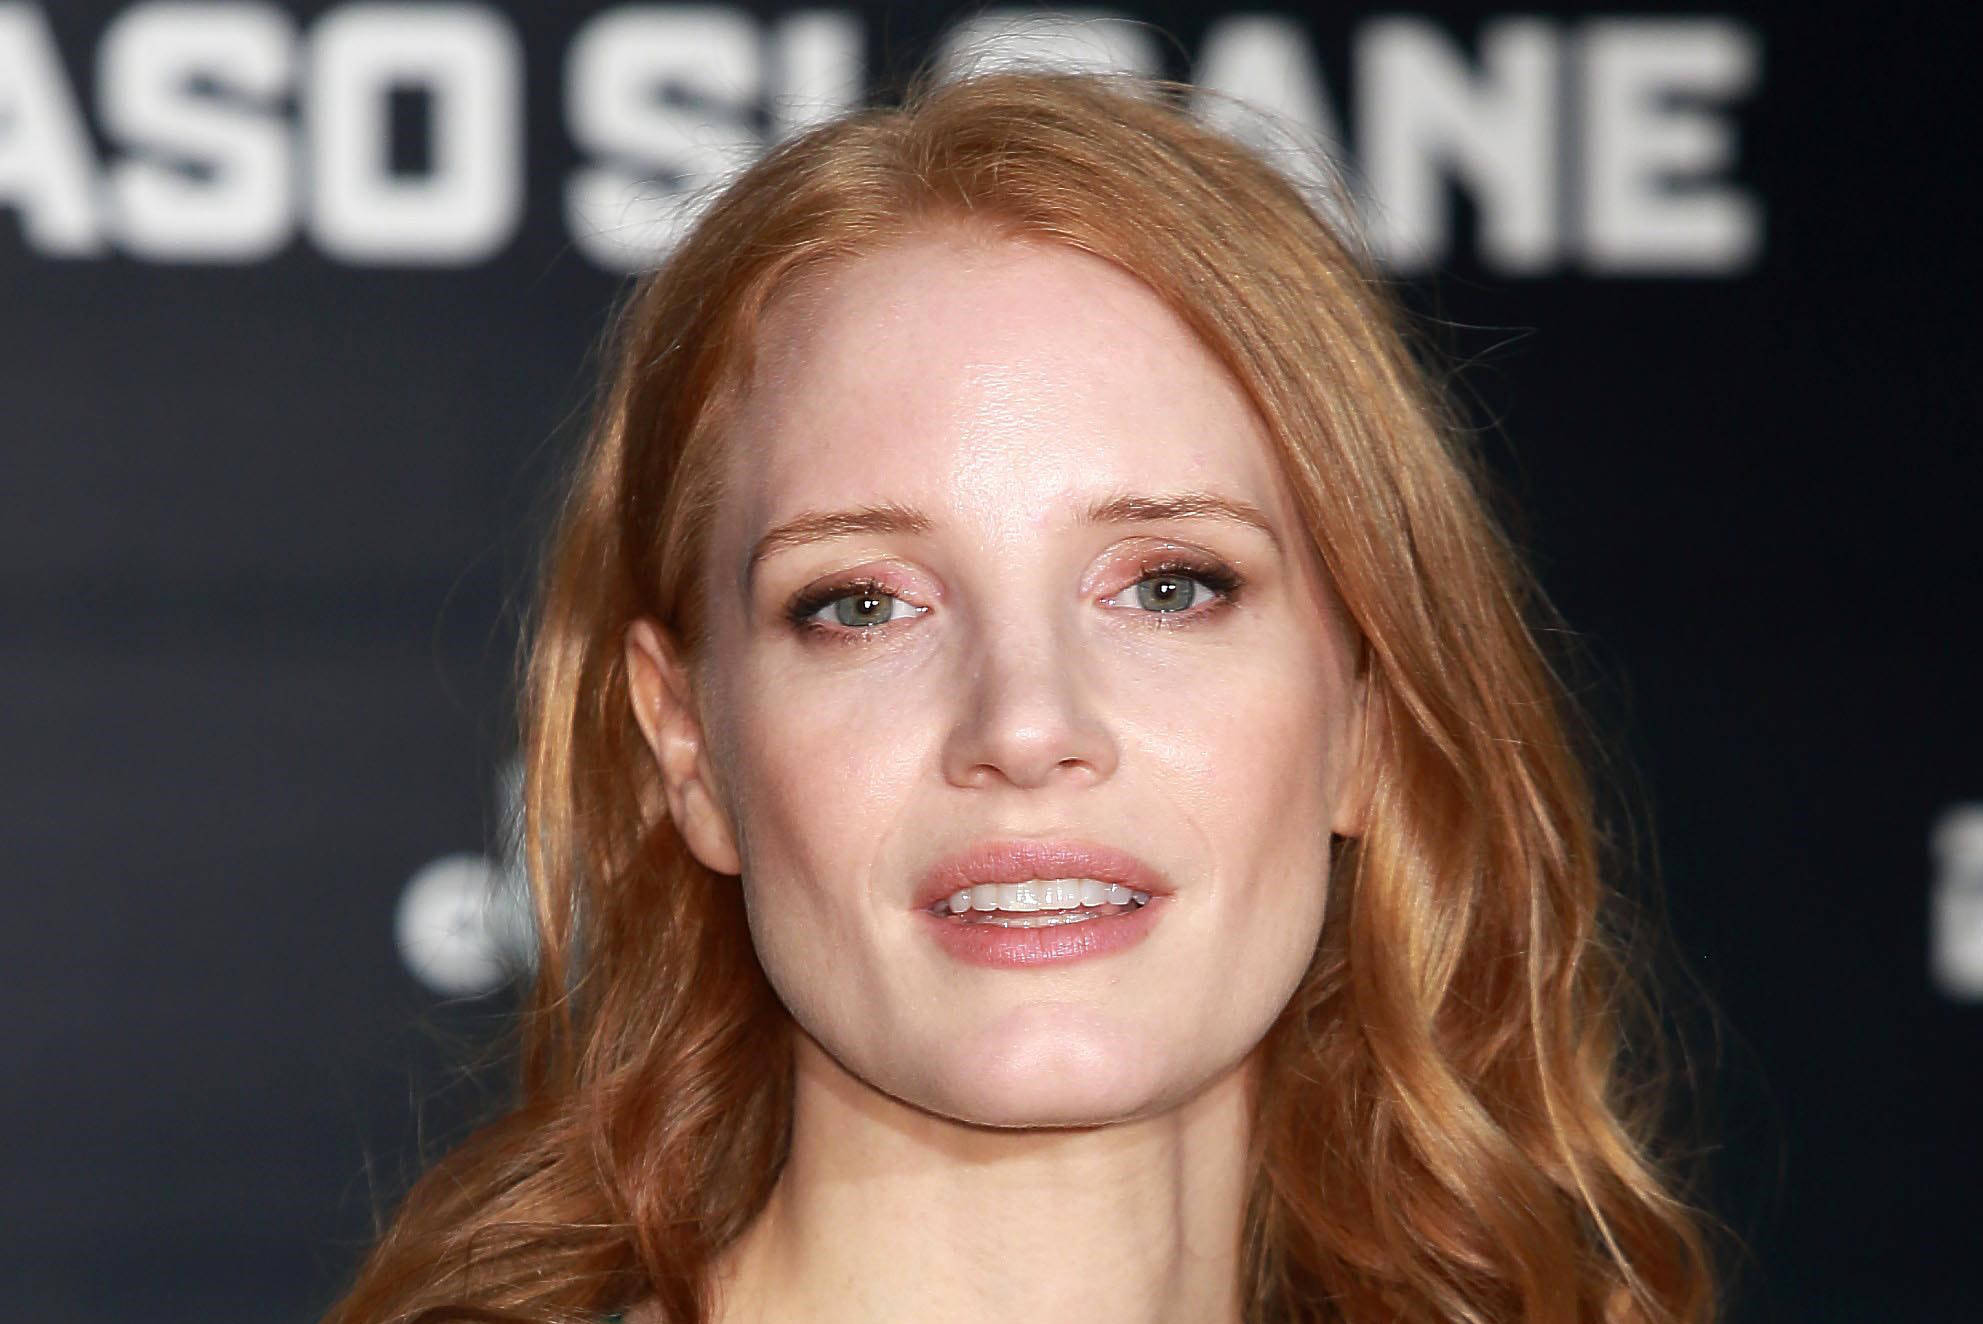 Jessica Chastain in Talks to Star in 'IT: Chapter 2'